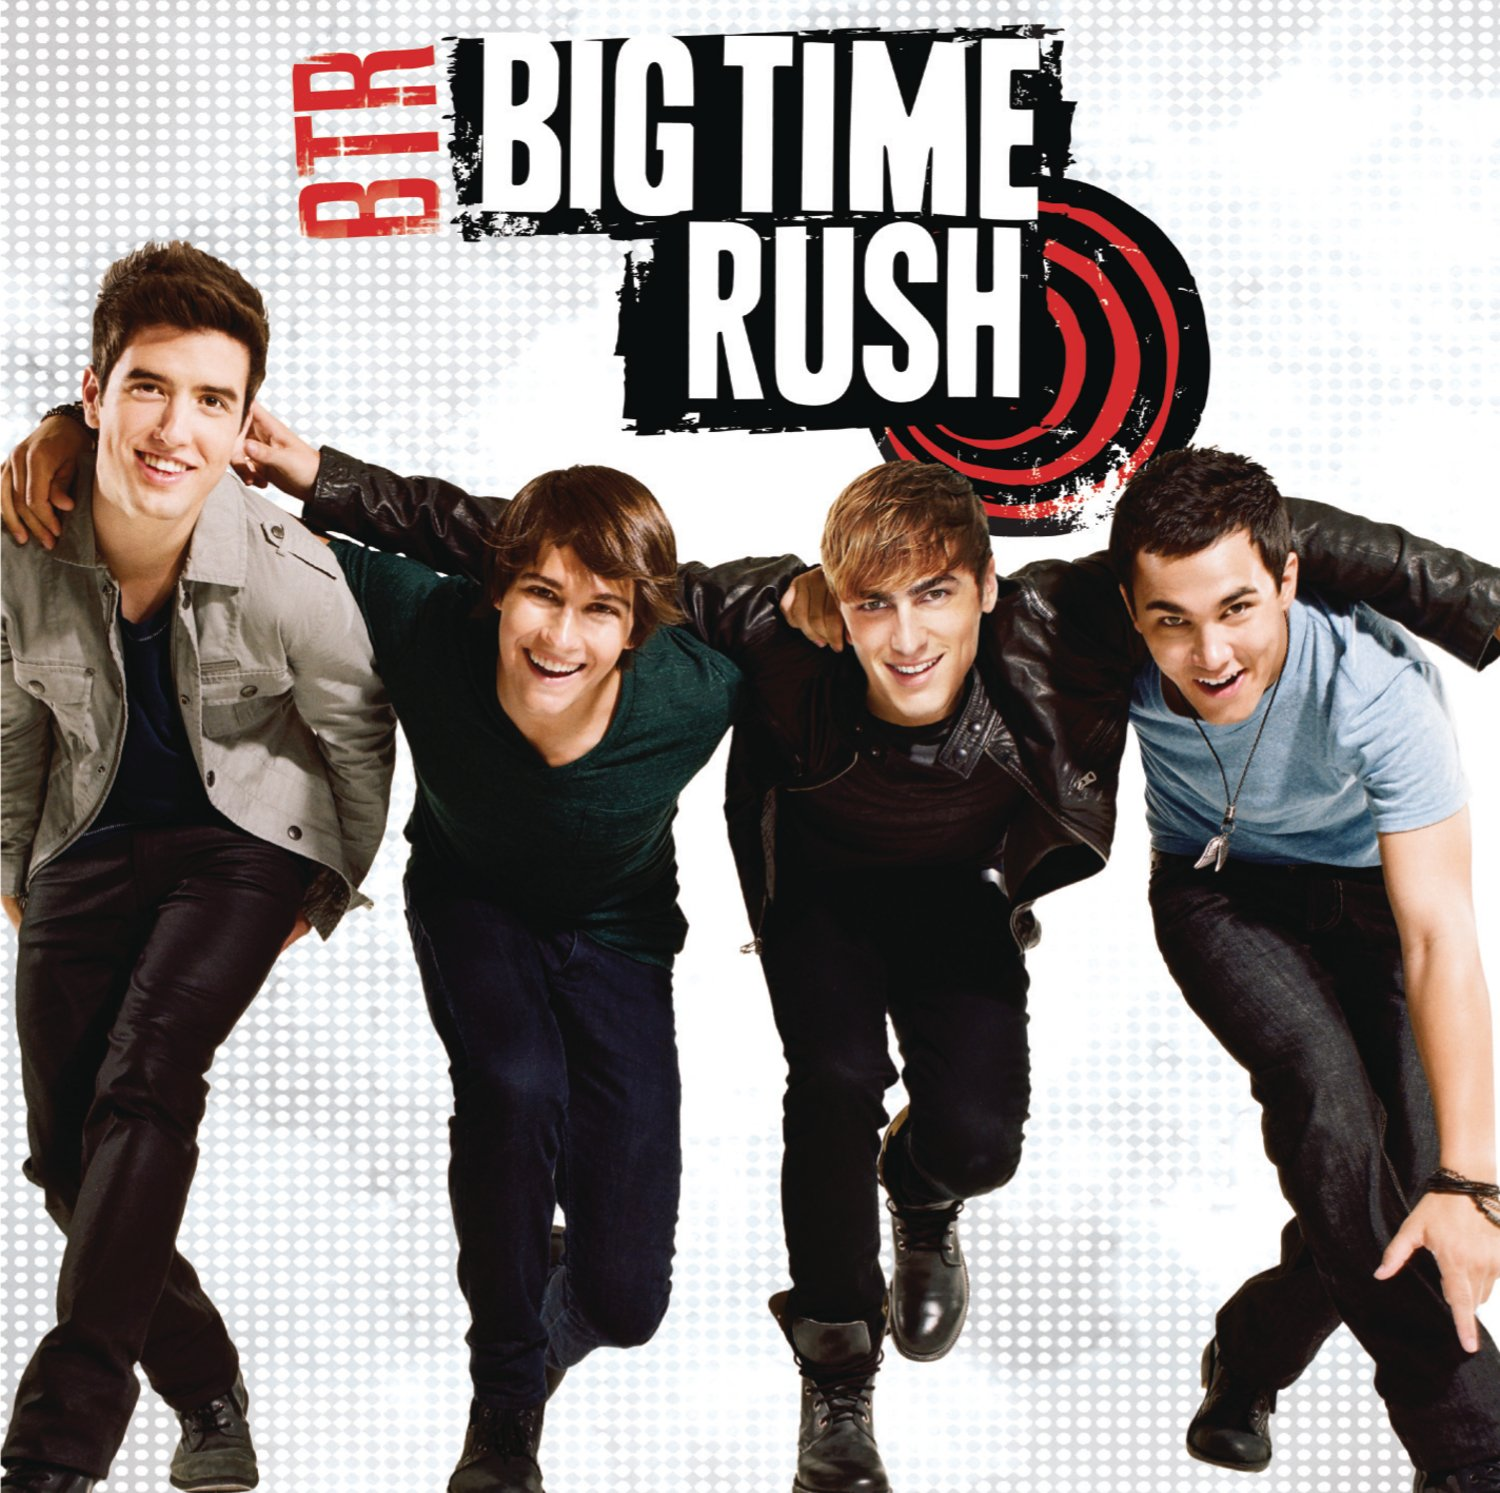 big time rush picture this free mp3 download